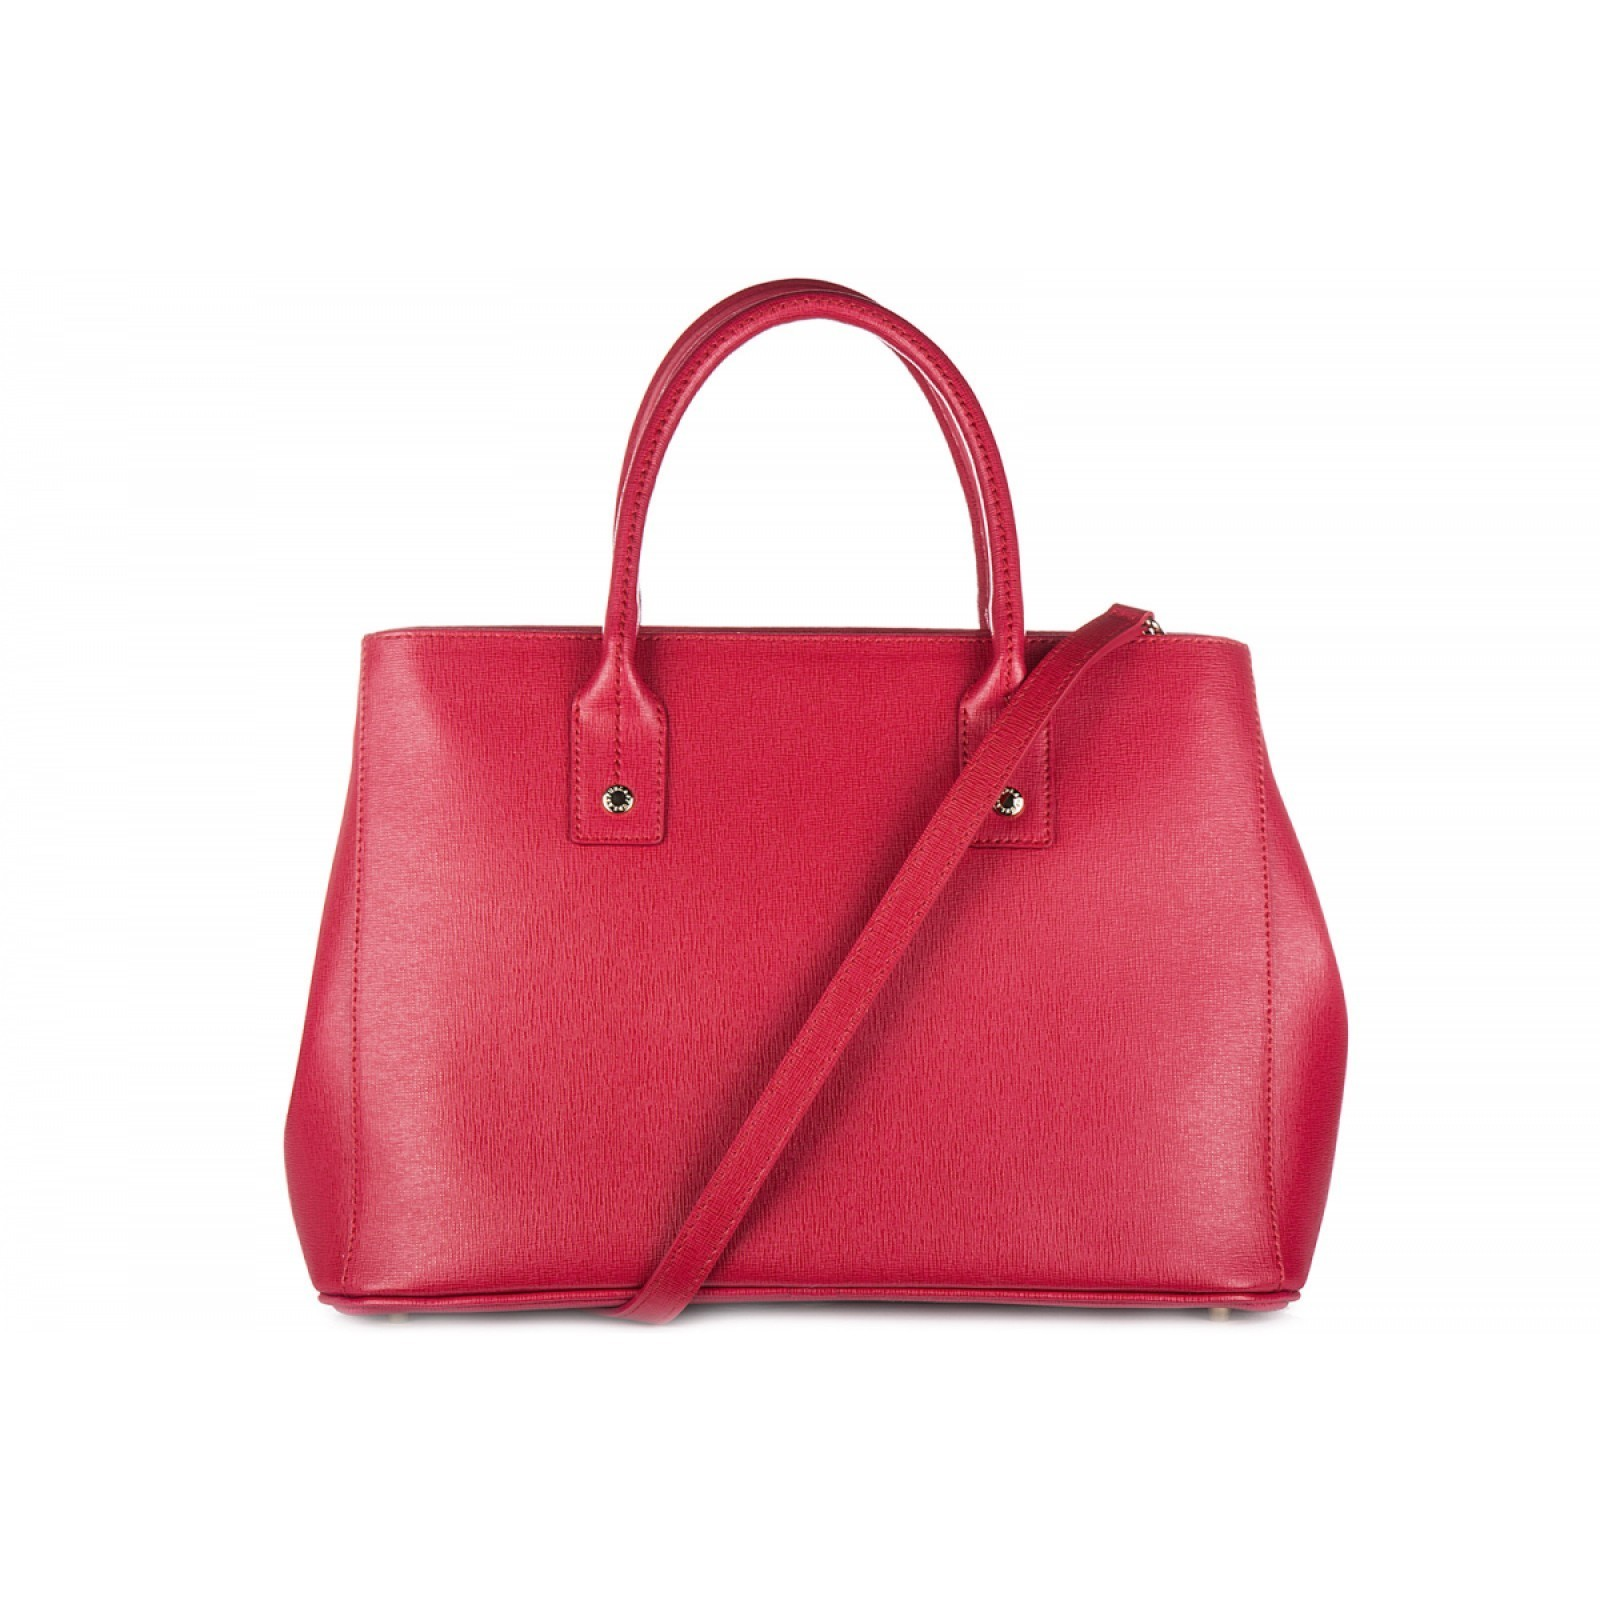 送料込 Borsa donna a mano shopping in pelle linda バッグ